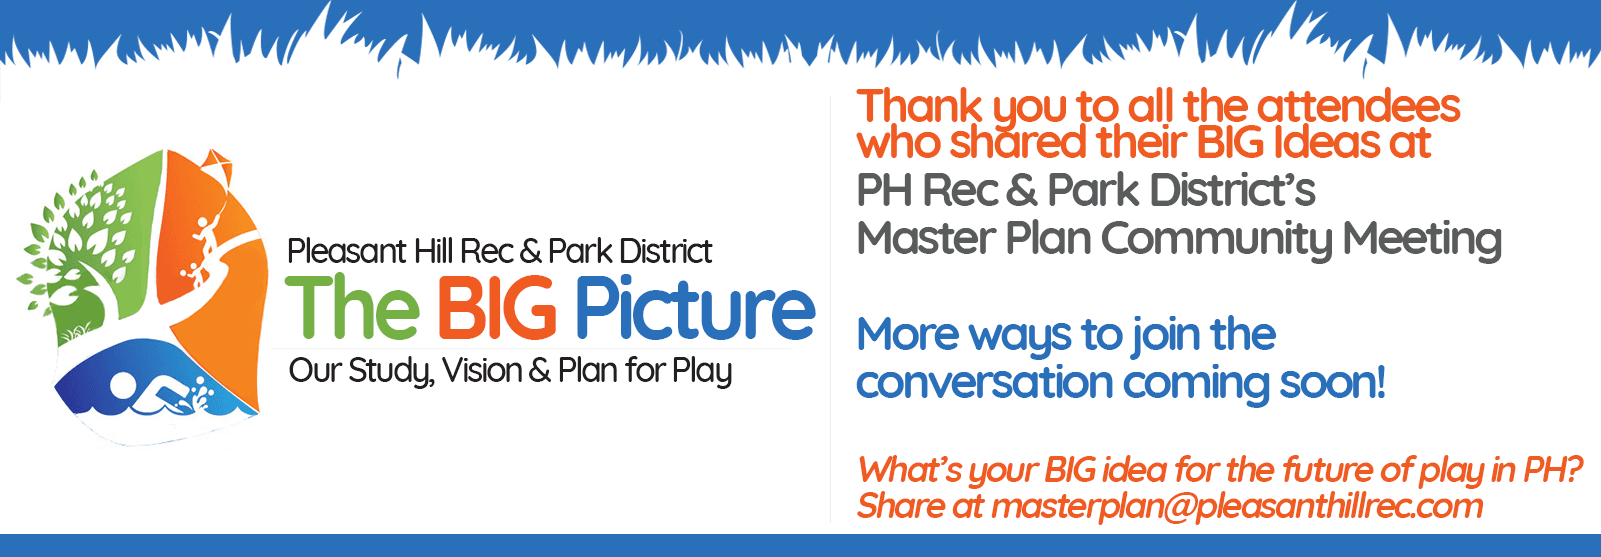 Thank You For Attending District Master Plan Community Meeting